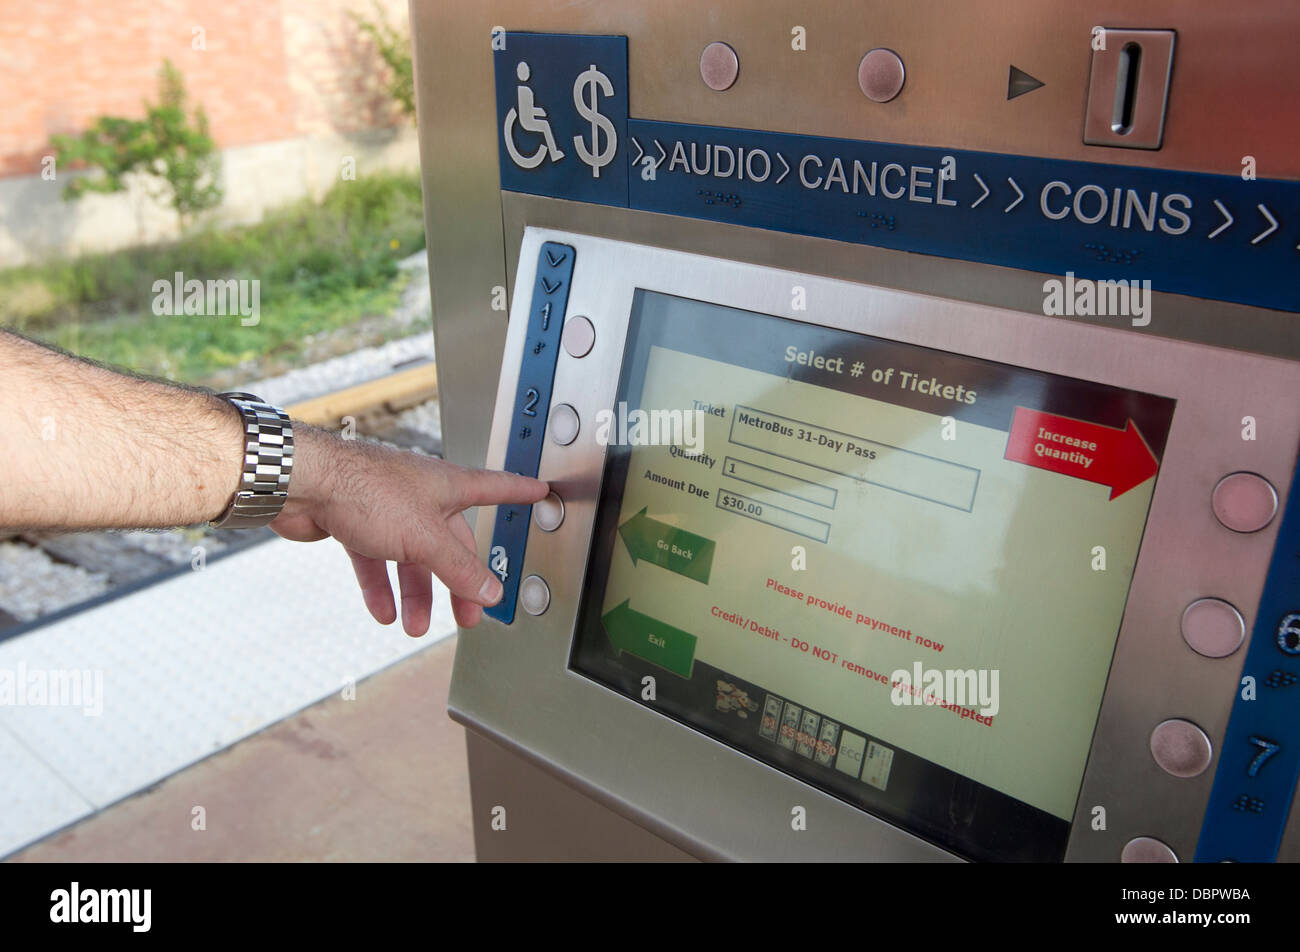 Morning commuter uses the Metro-Rail ticket payment kiosk at public transportation stations in Austin, Texas - Stock Image